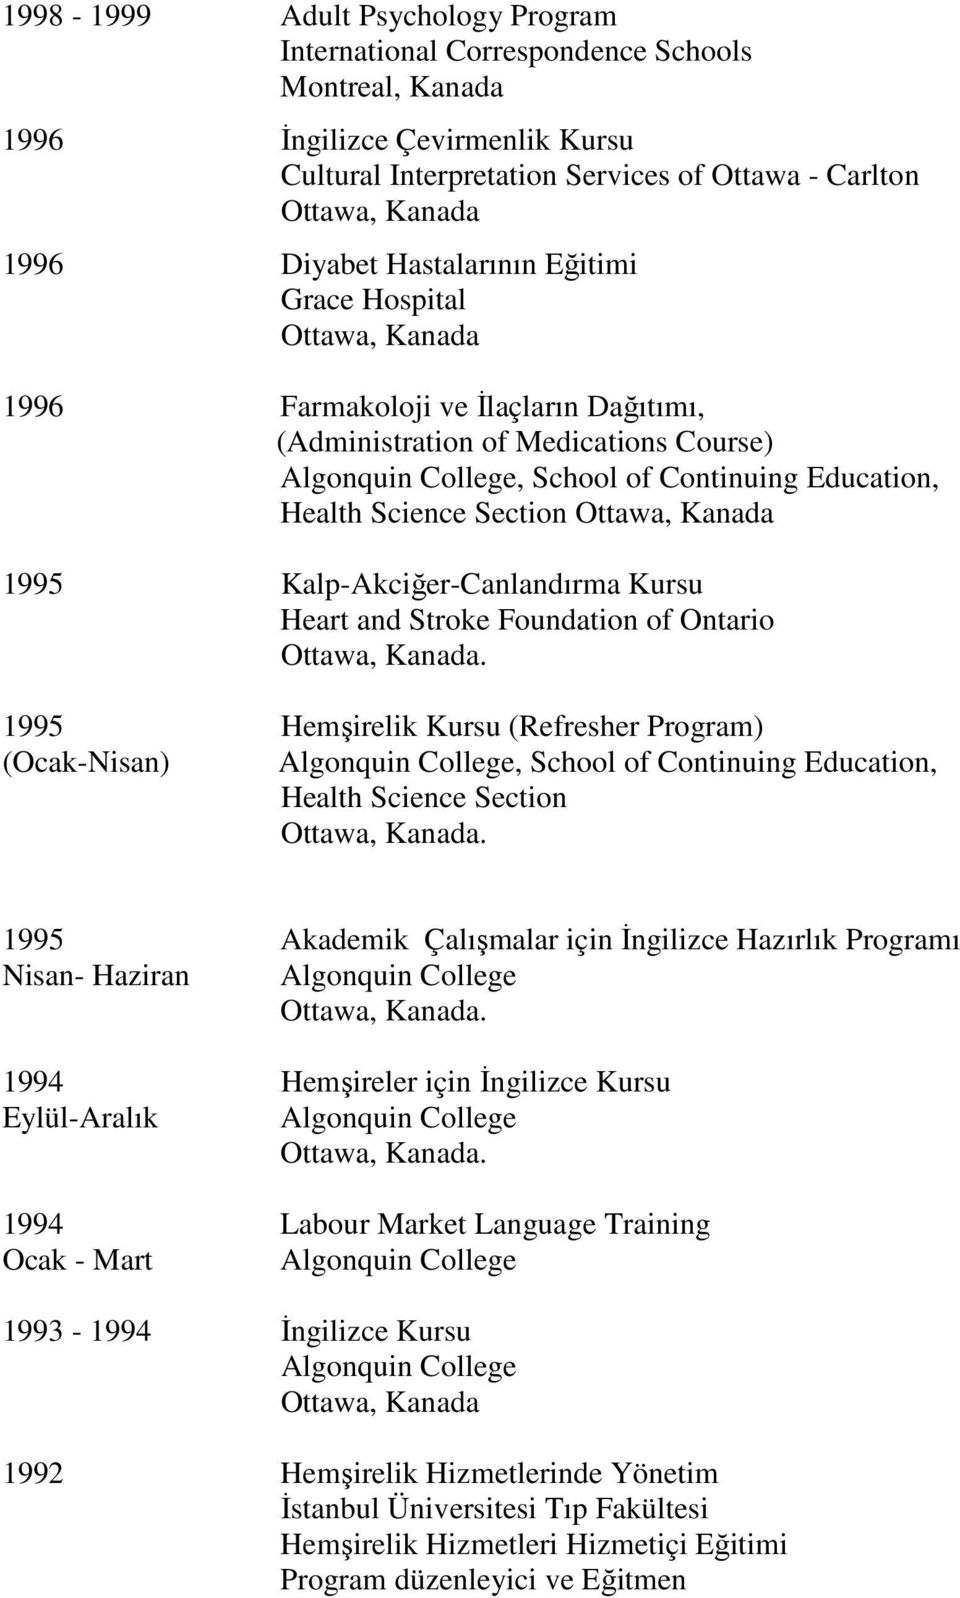 Kalp-Akciğer-Canlandırma Kursu Heart and Stroke Foundation of Ontario. 1995 lik Kursu (Refresher Program) (Ocak-Nisan) Algonquin College, School of Continuing Education, Health Science Section.